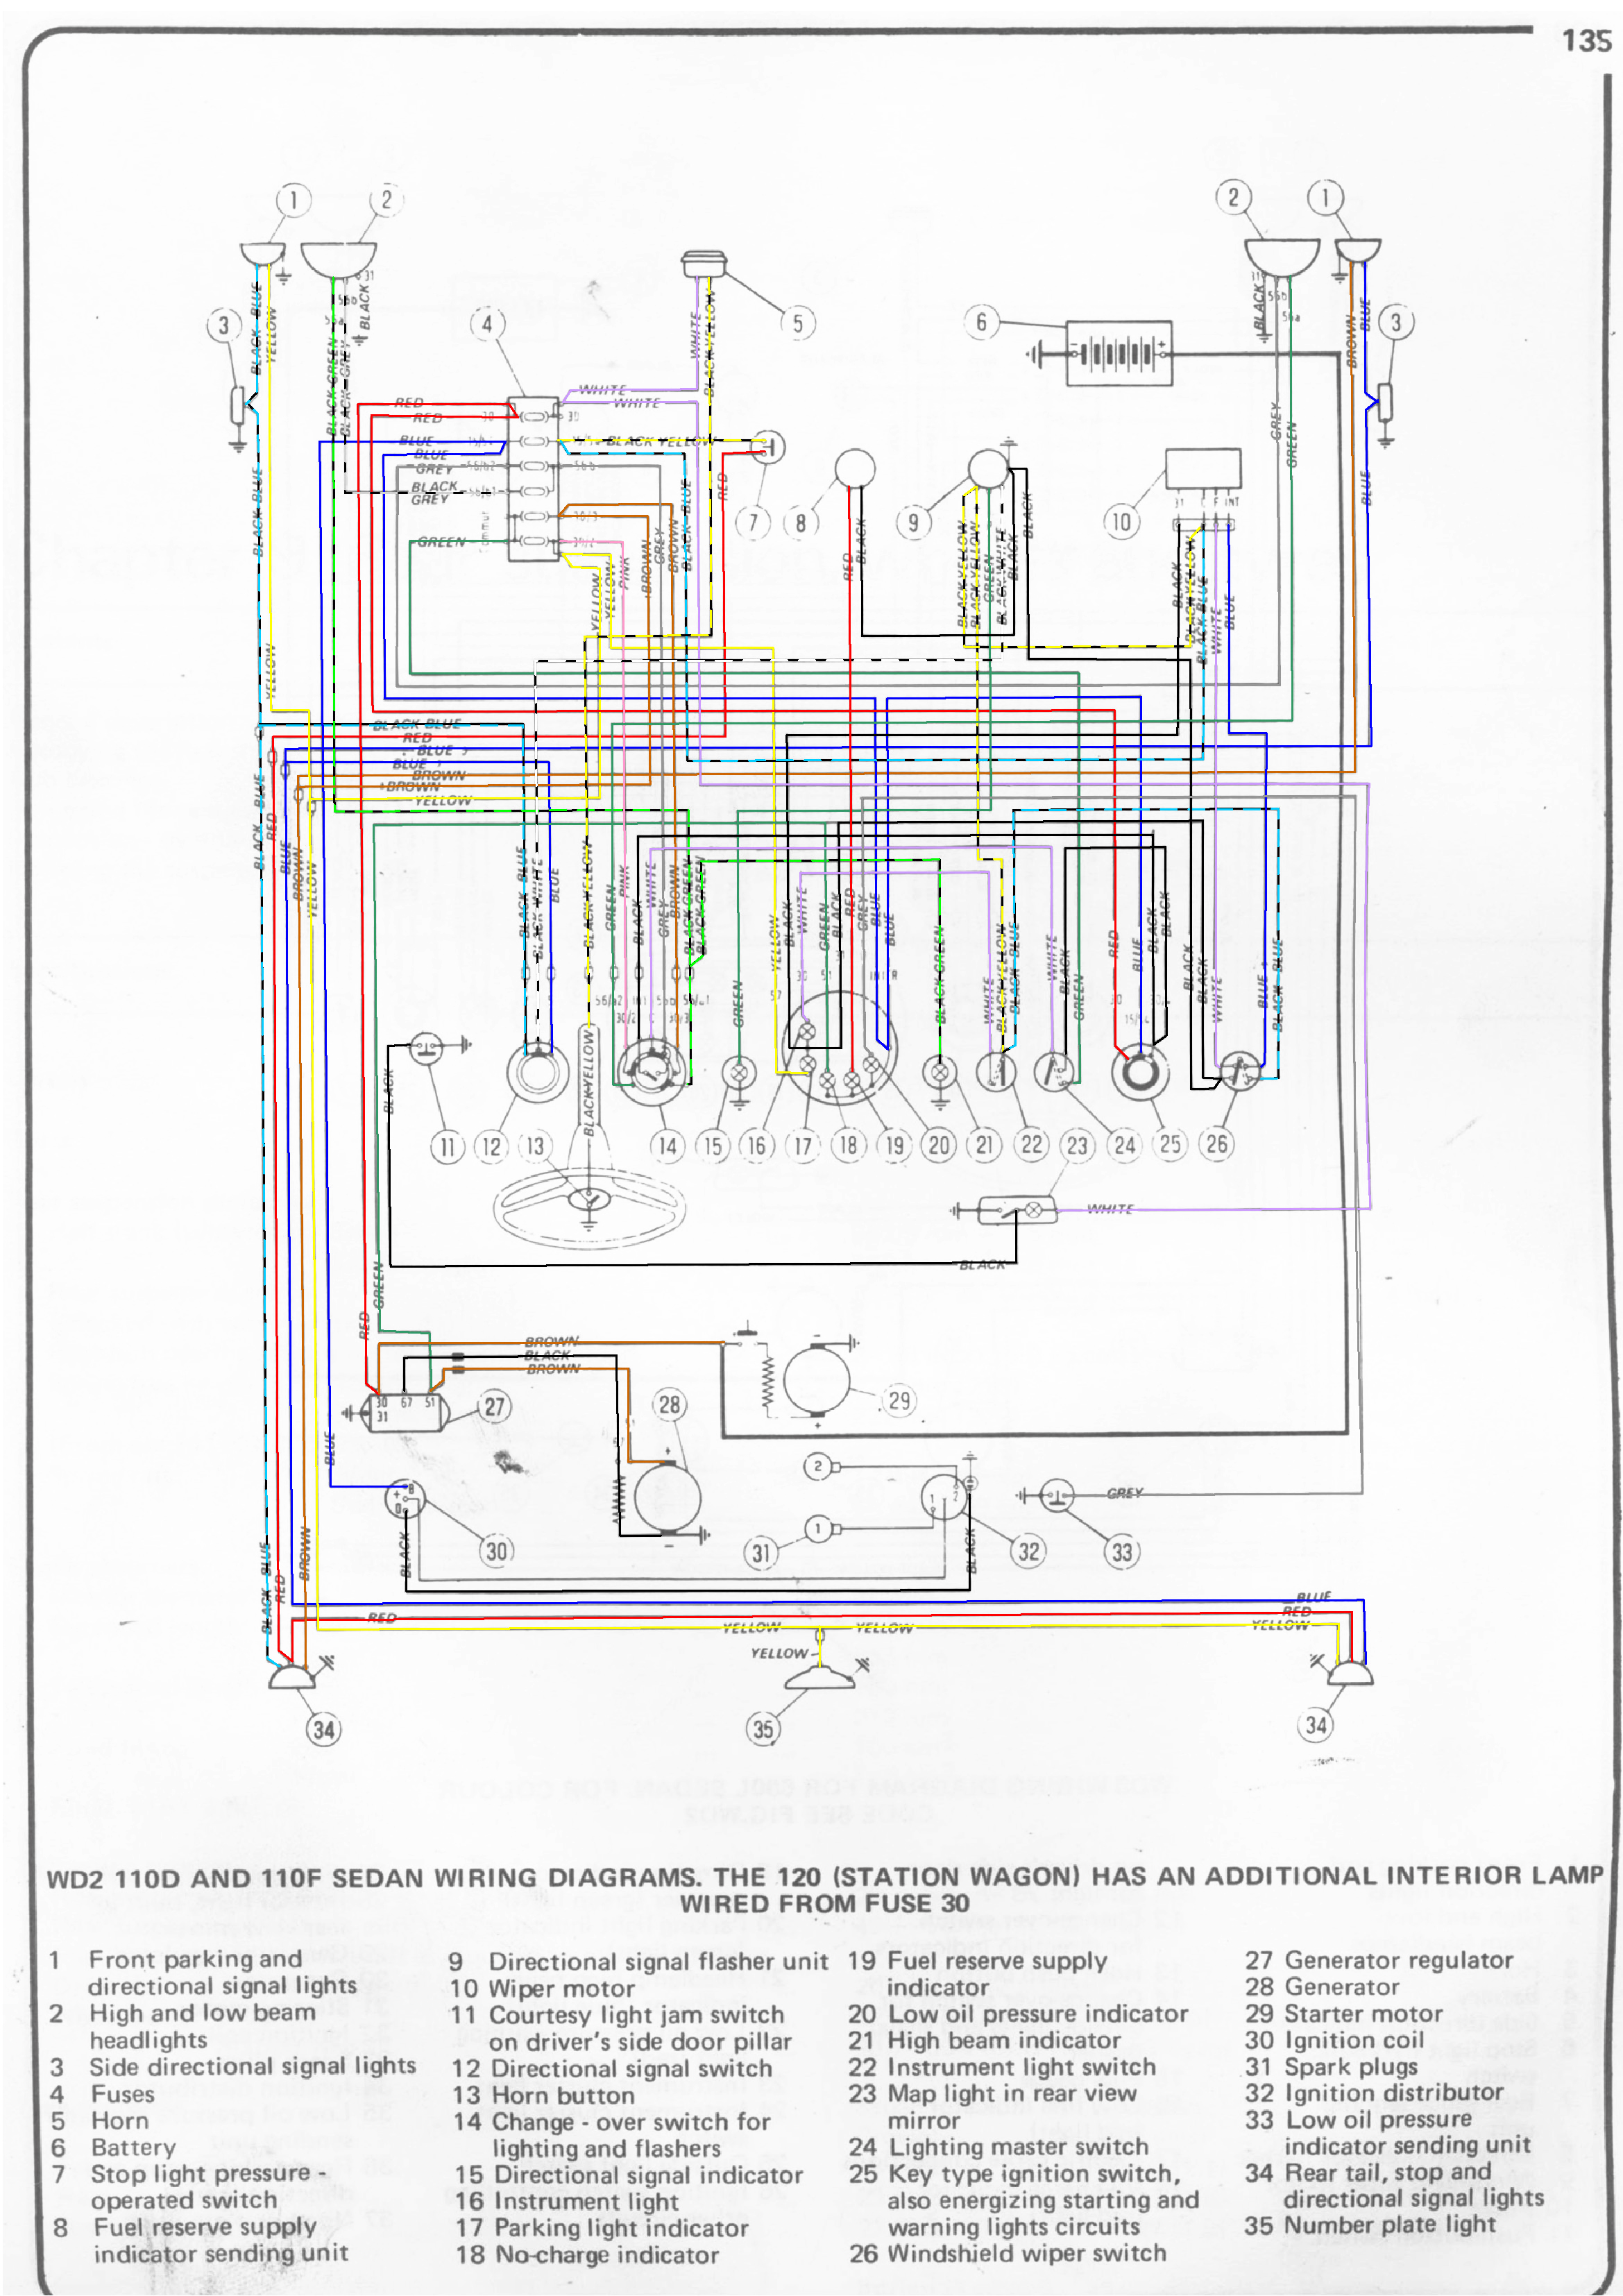 Fiat Bravo Airbag Wiring Diagram Example Electrical Wiring Diagram \u2022  1982 240D Wiring-Diagram Fiat 500 Wiring Diagram Airbag